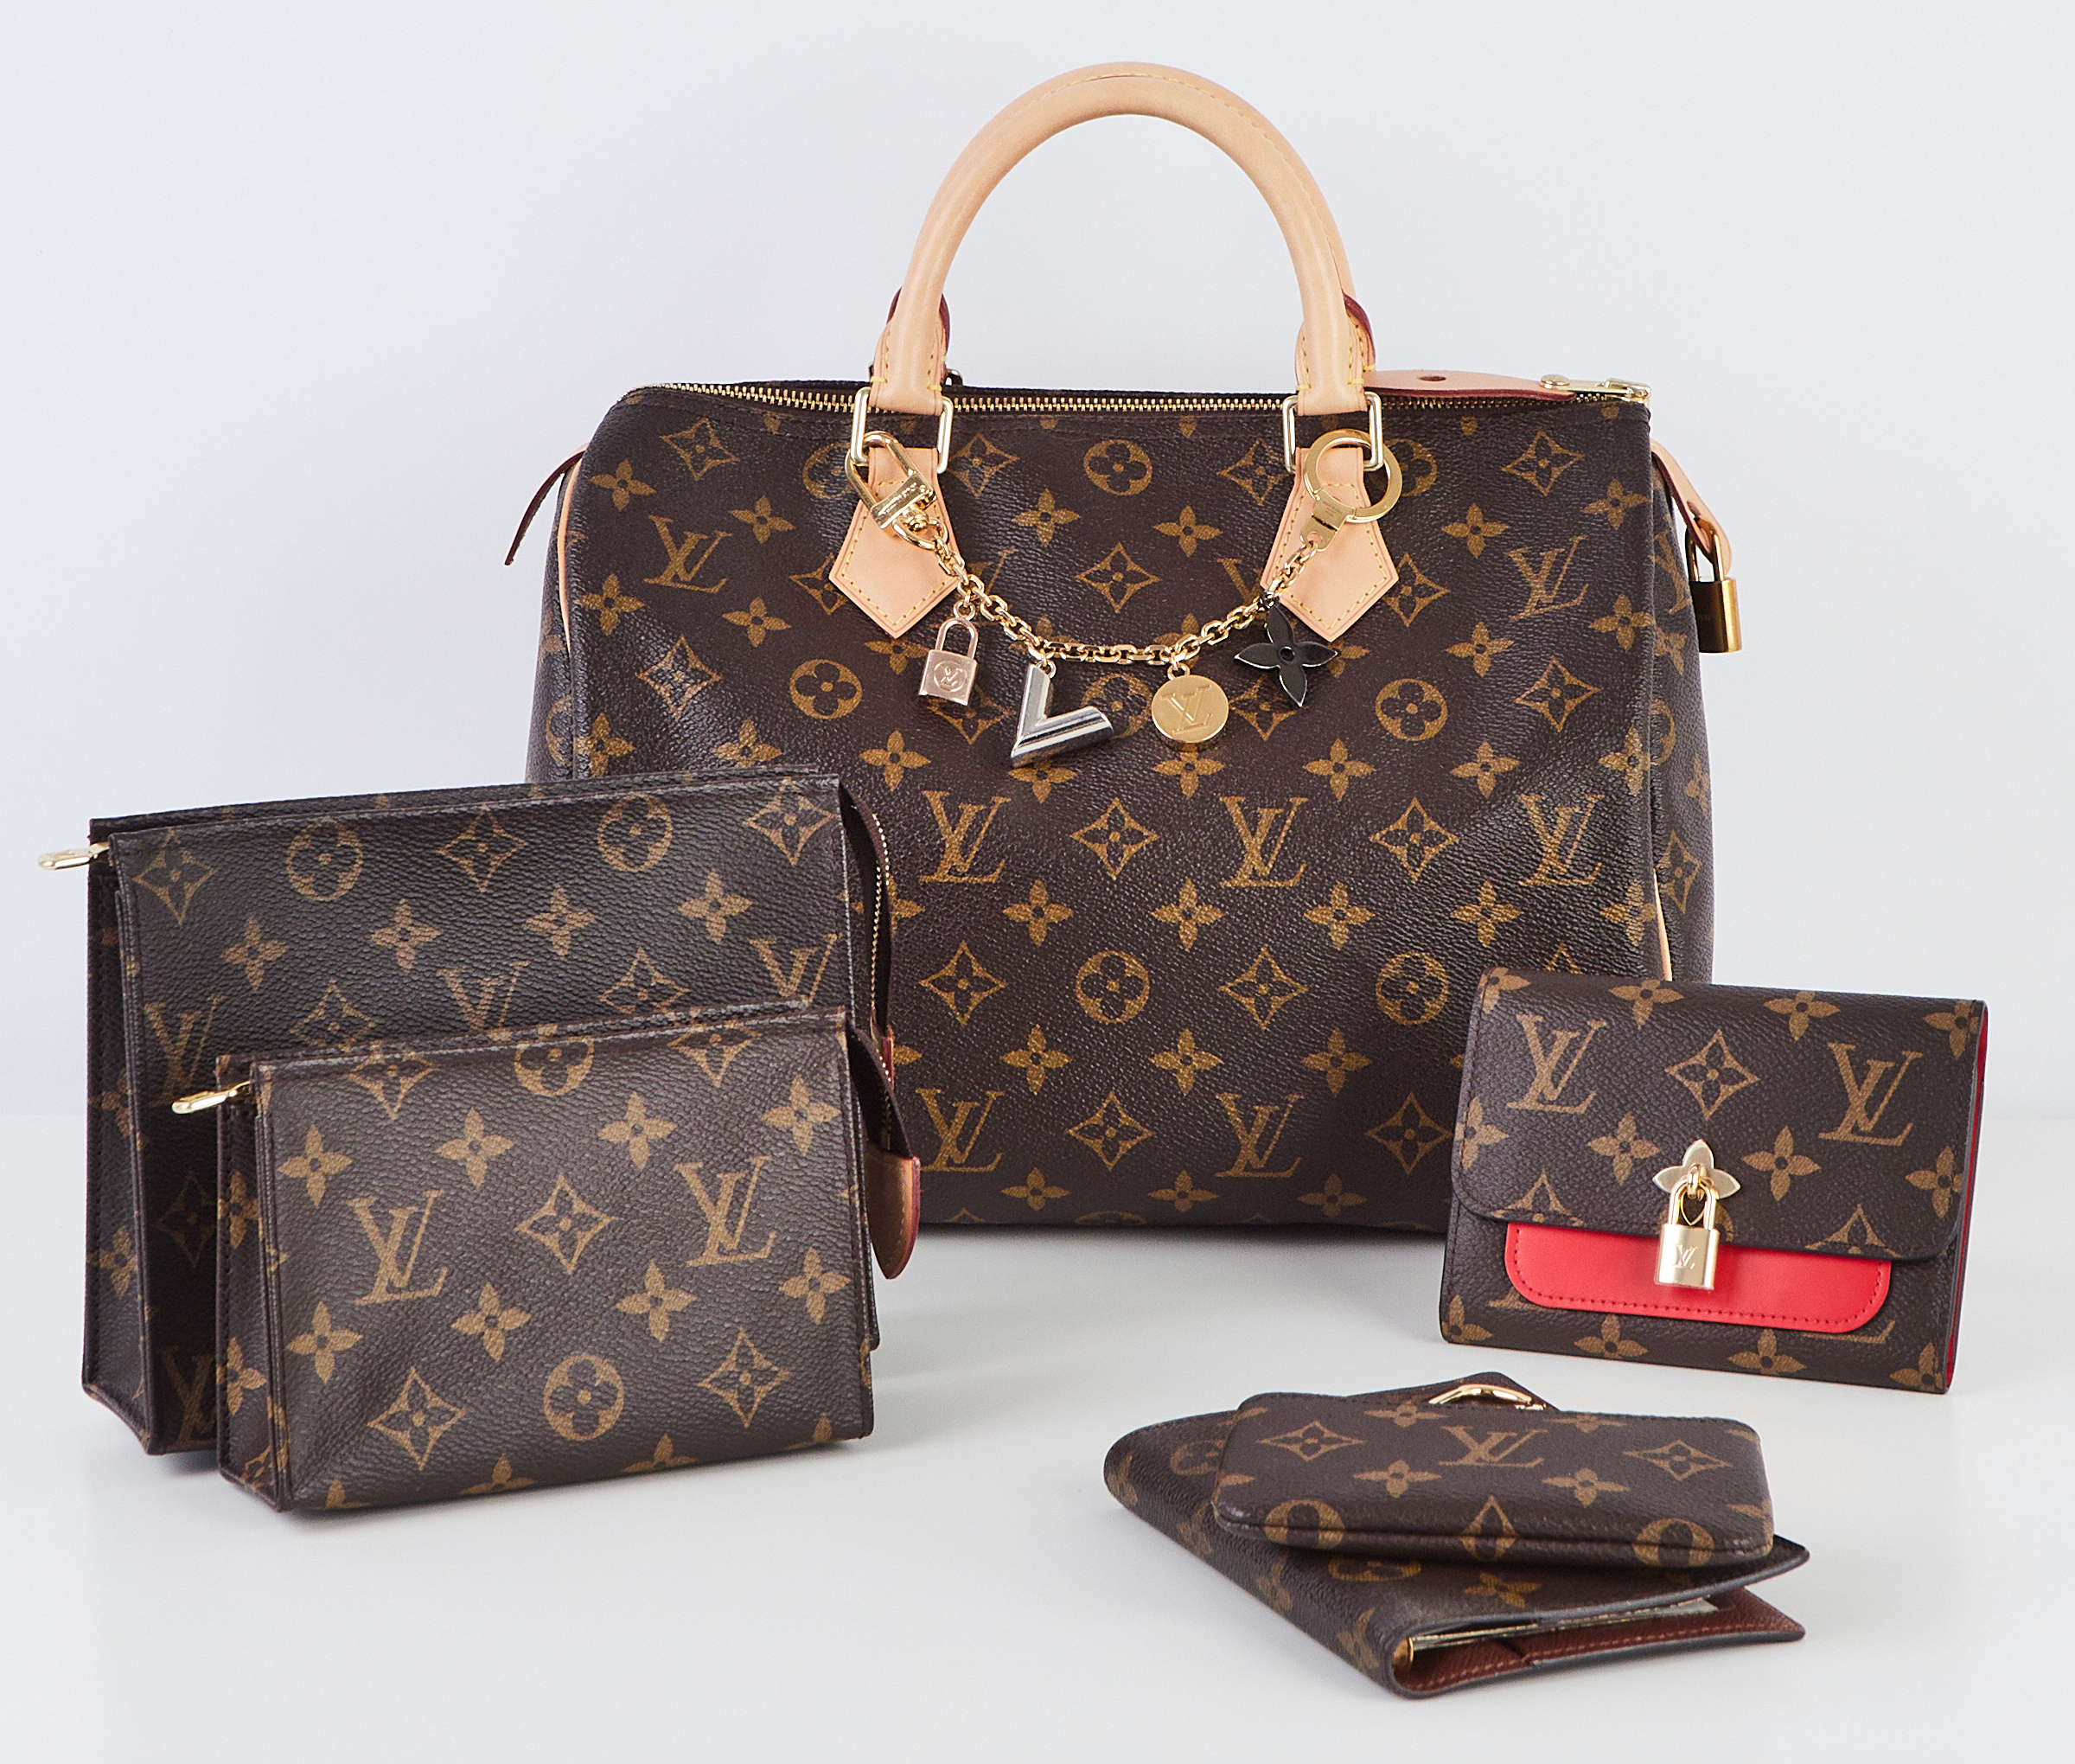 150d2fe4c840d All About Louis Vuitton Date Codes - Yoogi's Closet Blog